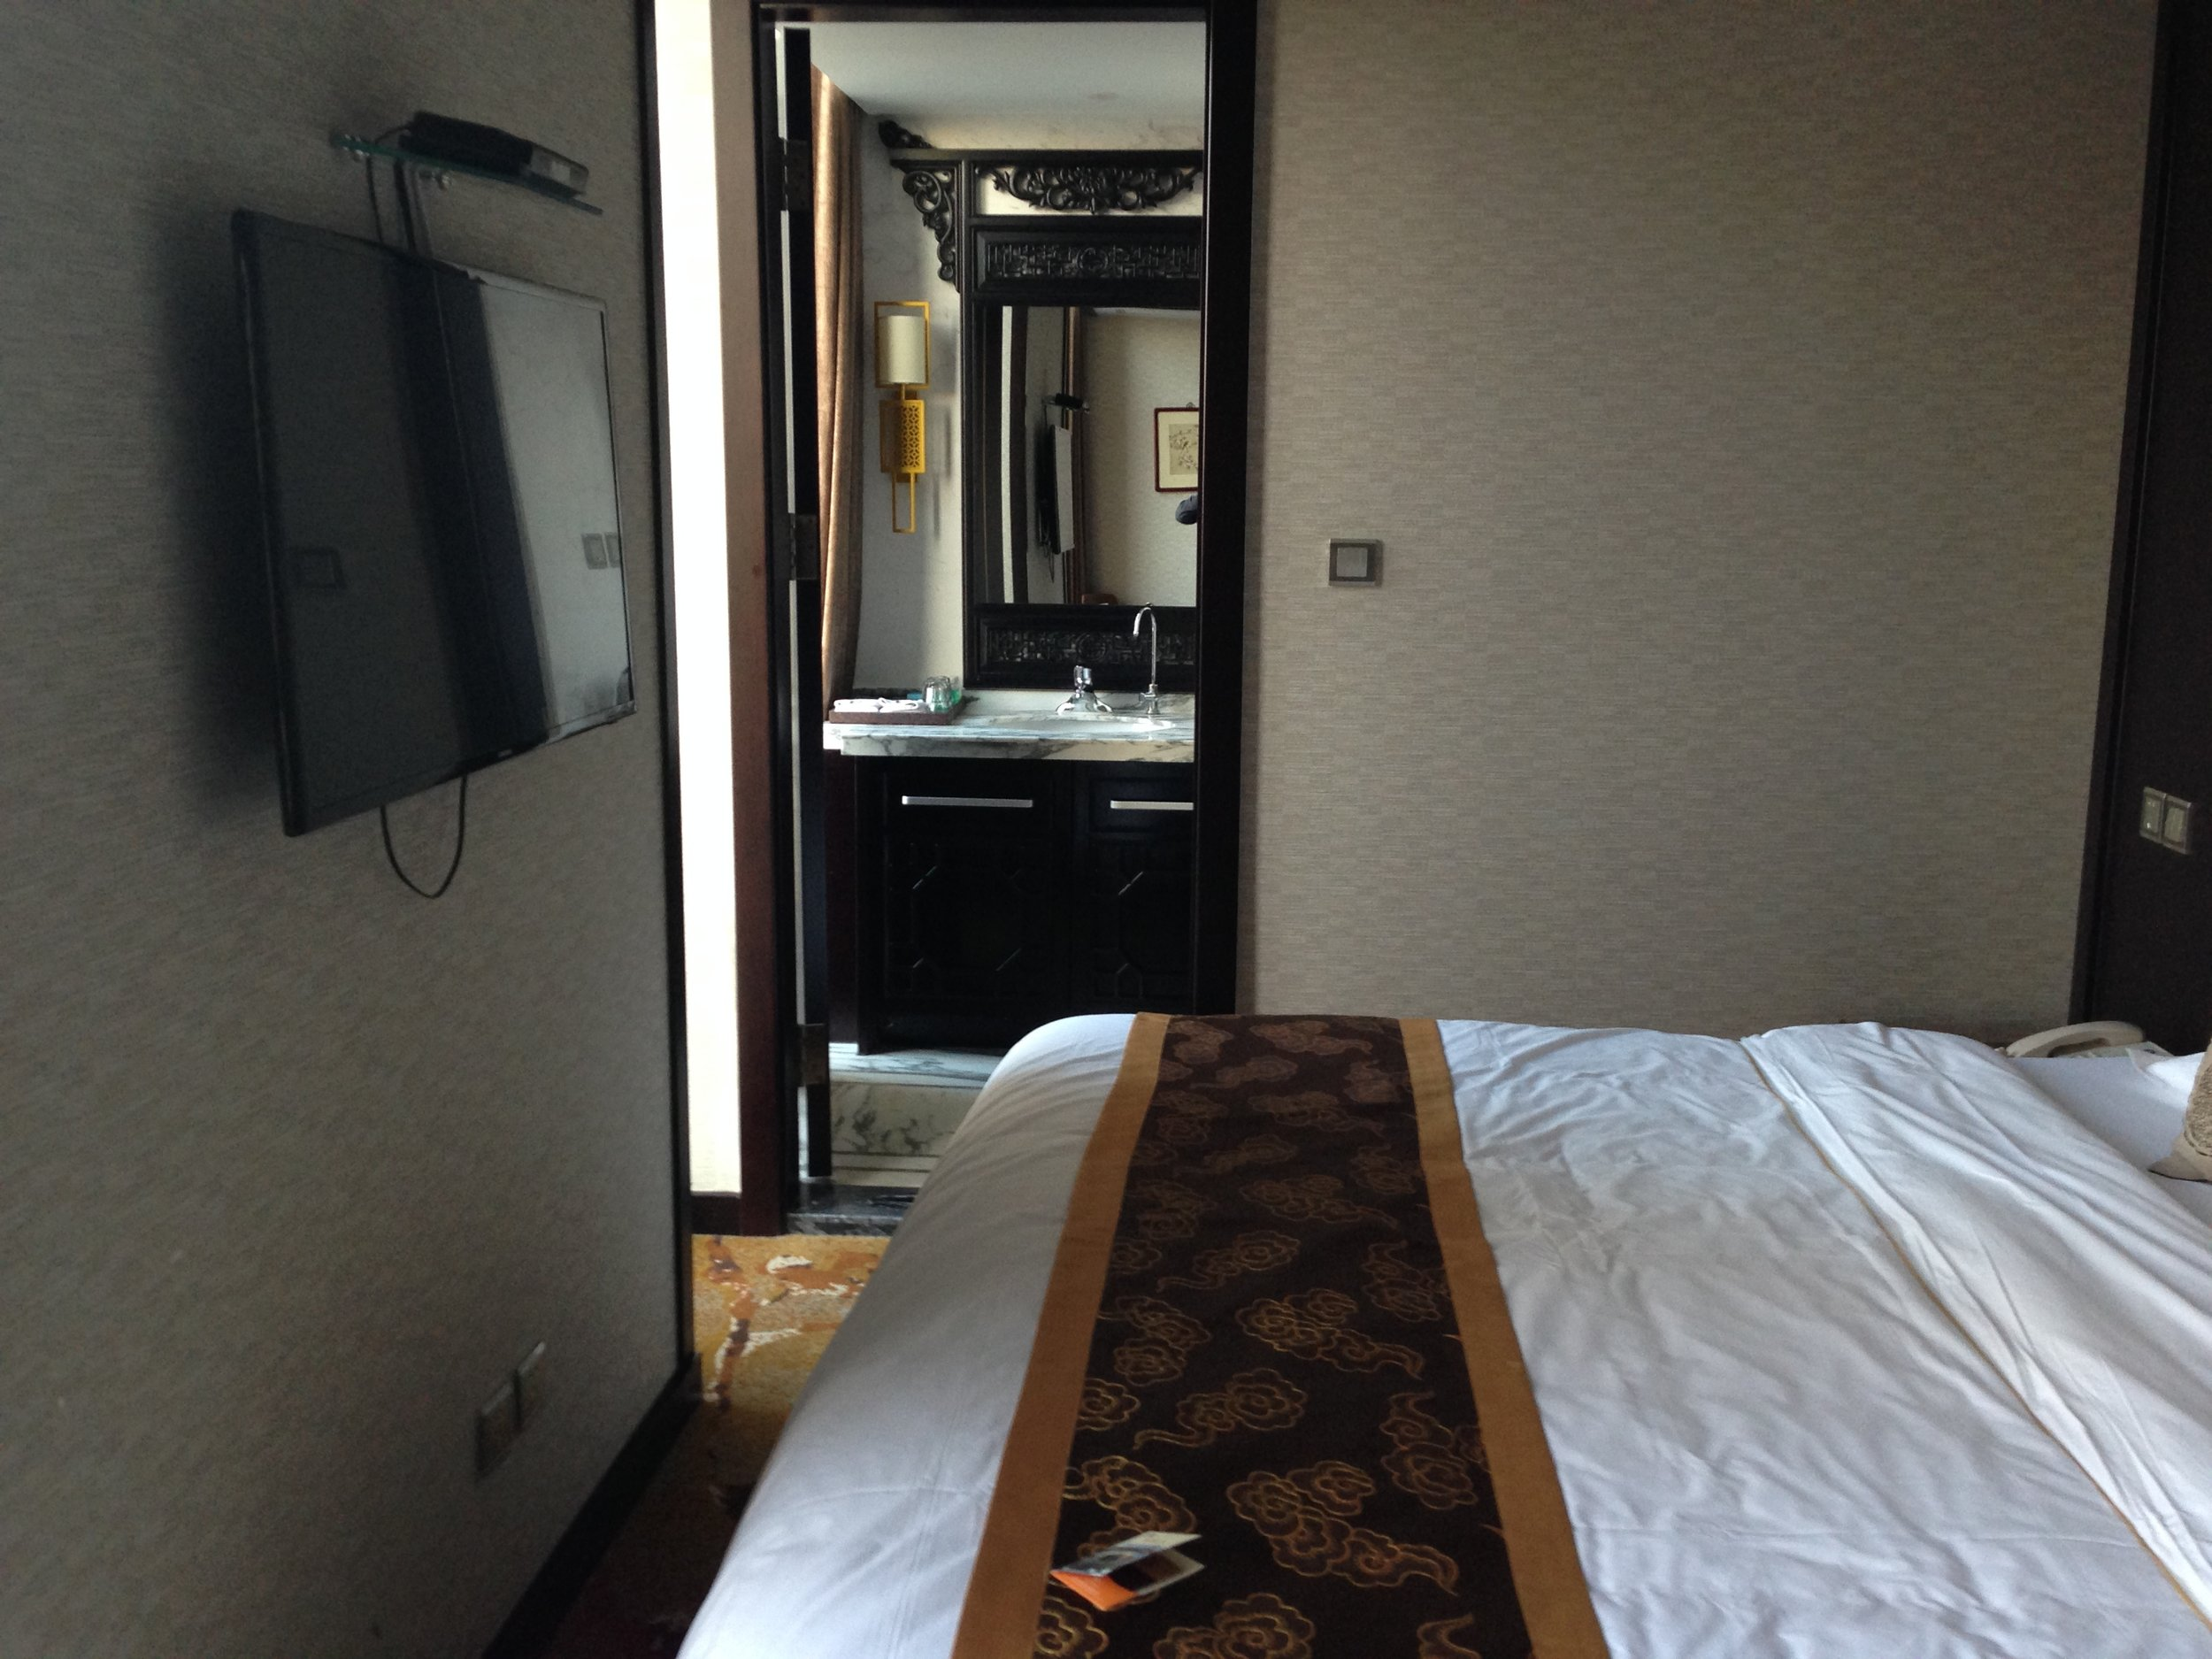 The bed is large, with just enough room to walk by it to the bathroom.